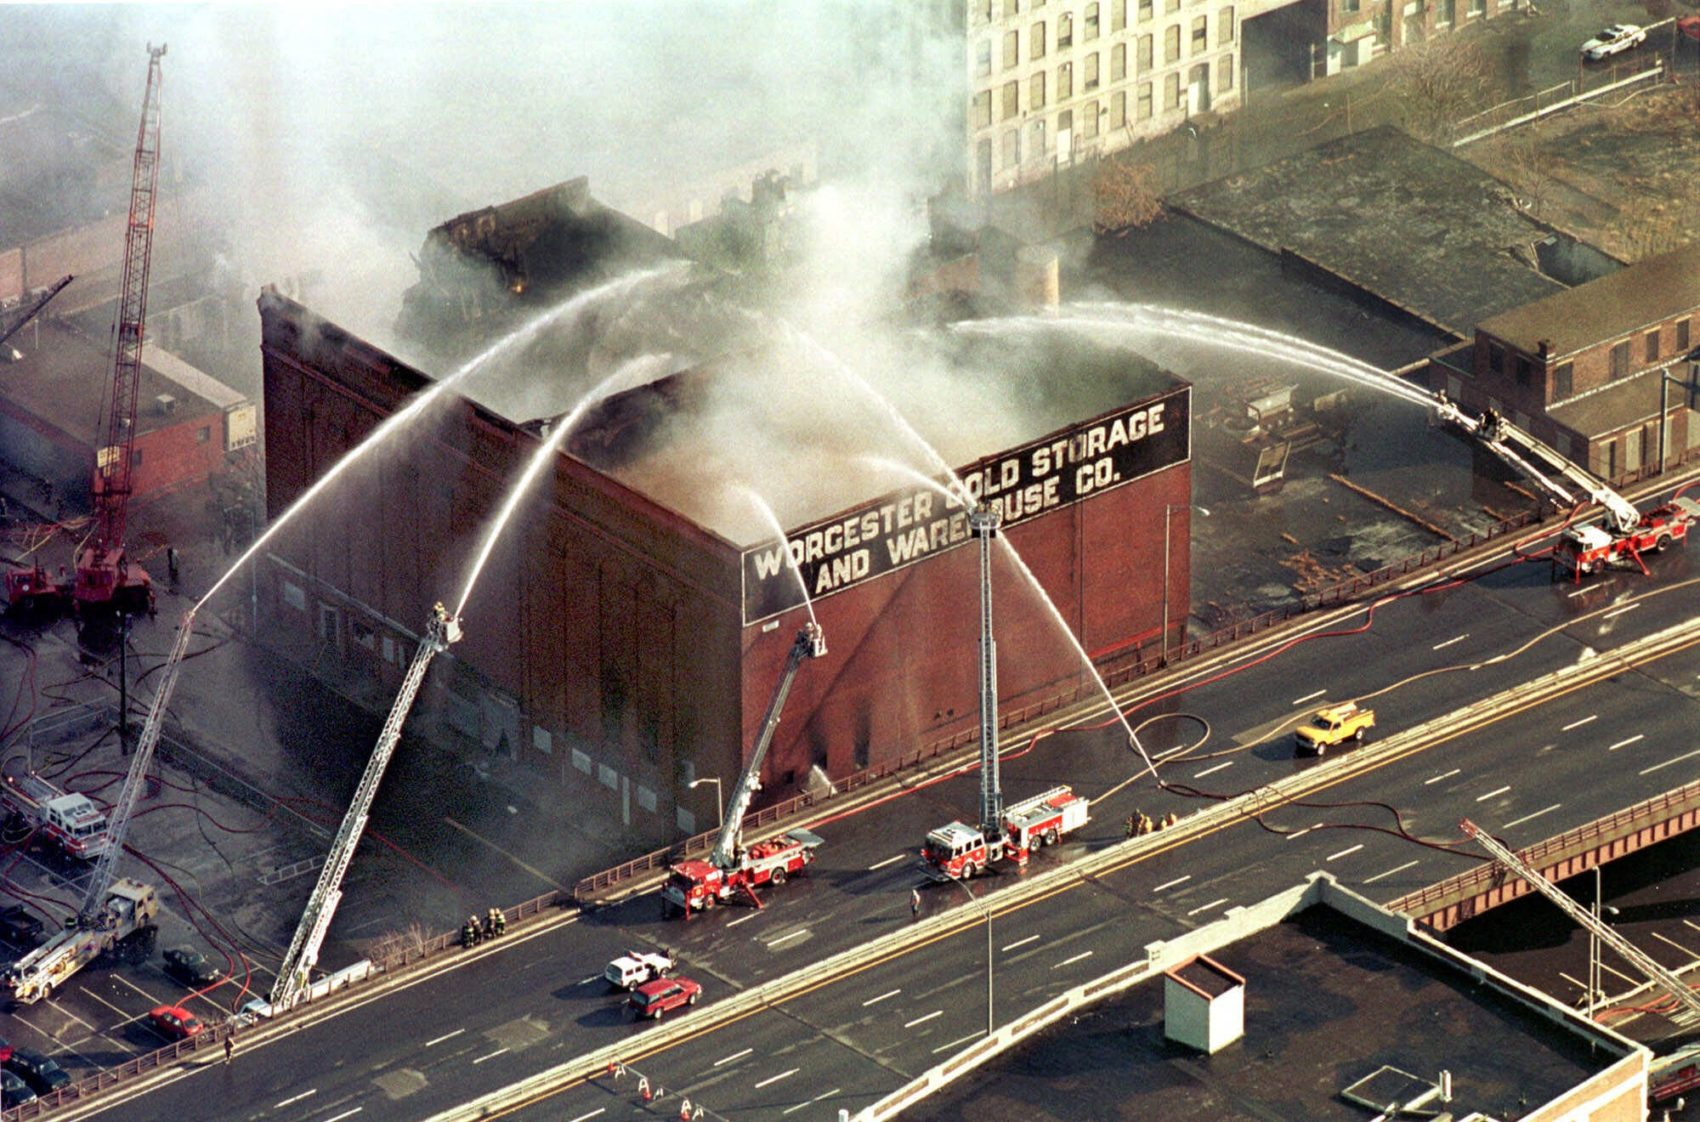 In this 1999 photo, firefighters spray water onto the burning Worcester Cold Storage and Warehouse Co. building, where six Worcester firefighters lost their lives. (Paul Connors/AP)